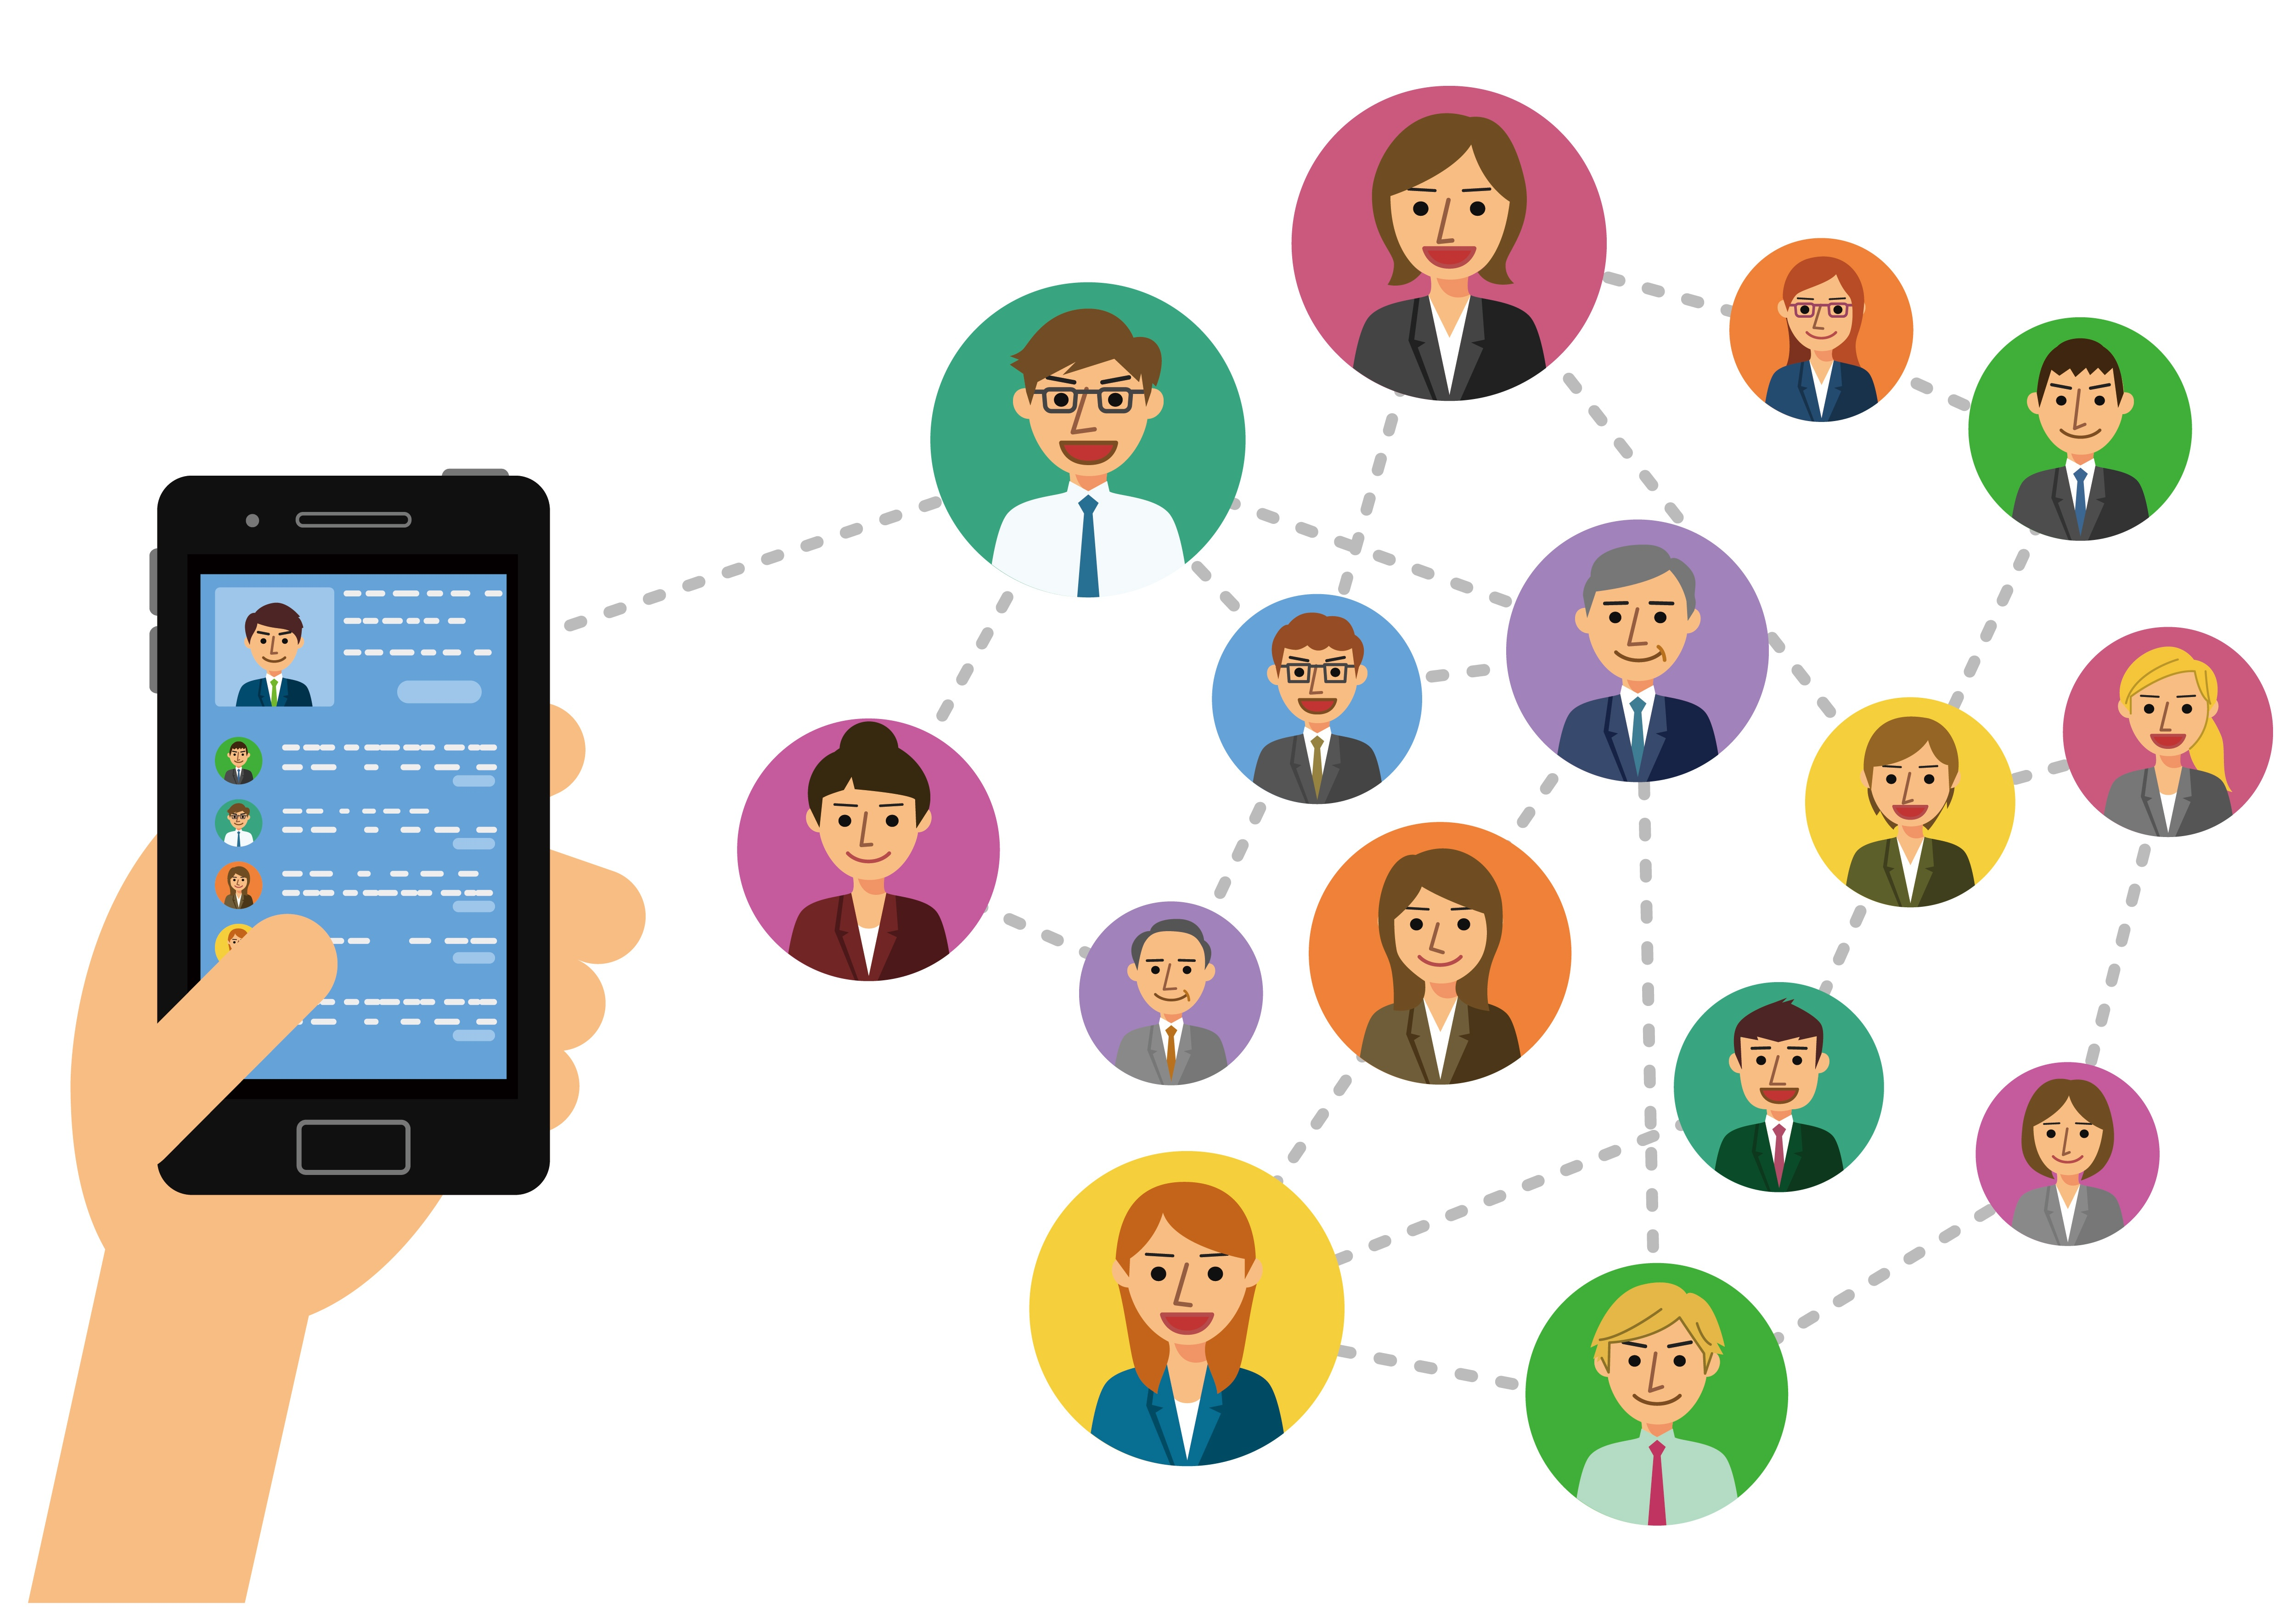 Connect with your mobile audience using these 3 tips